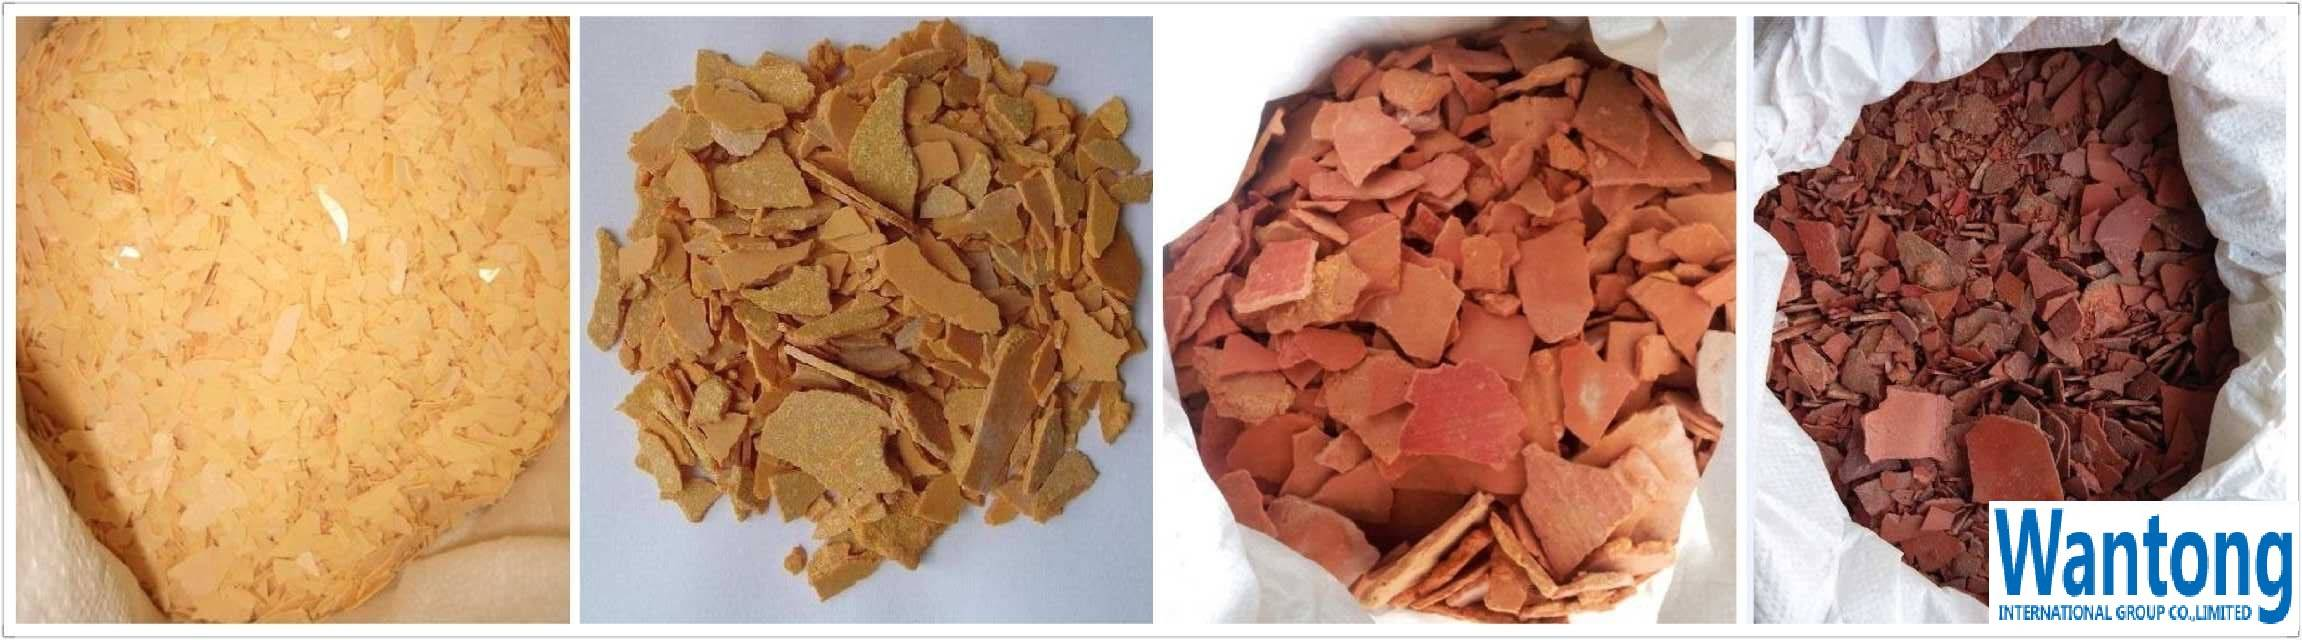 SODIUM SULPHIDE RED&YELLOW FLAKES 60%MIN(USED FOR LEATHER TANNING PURPOSE)